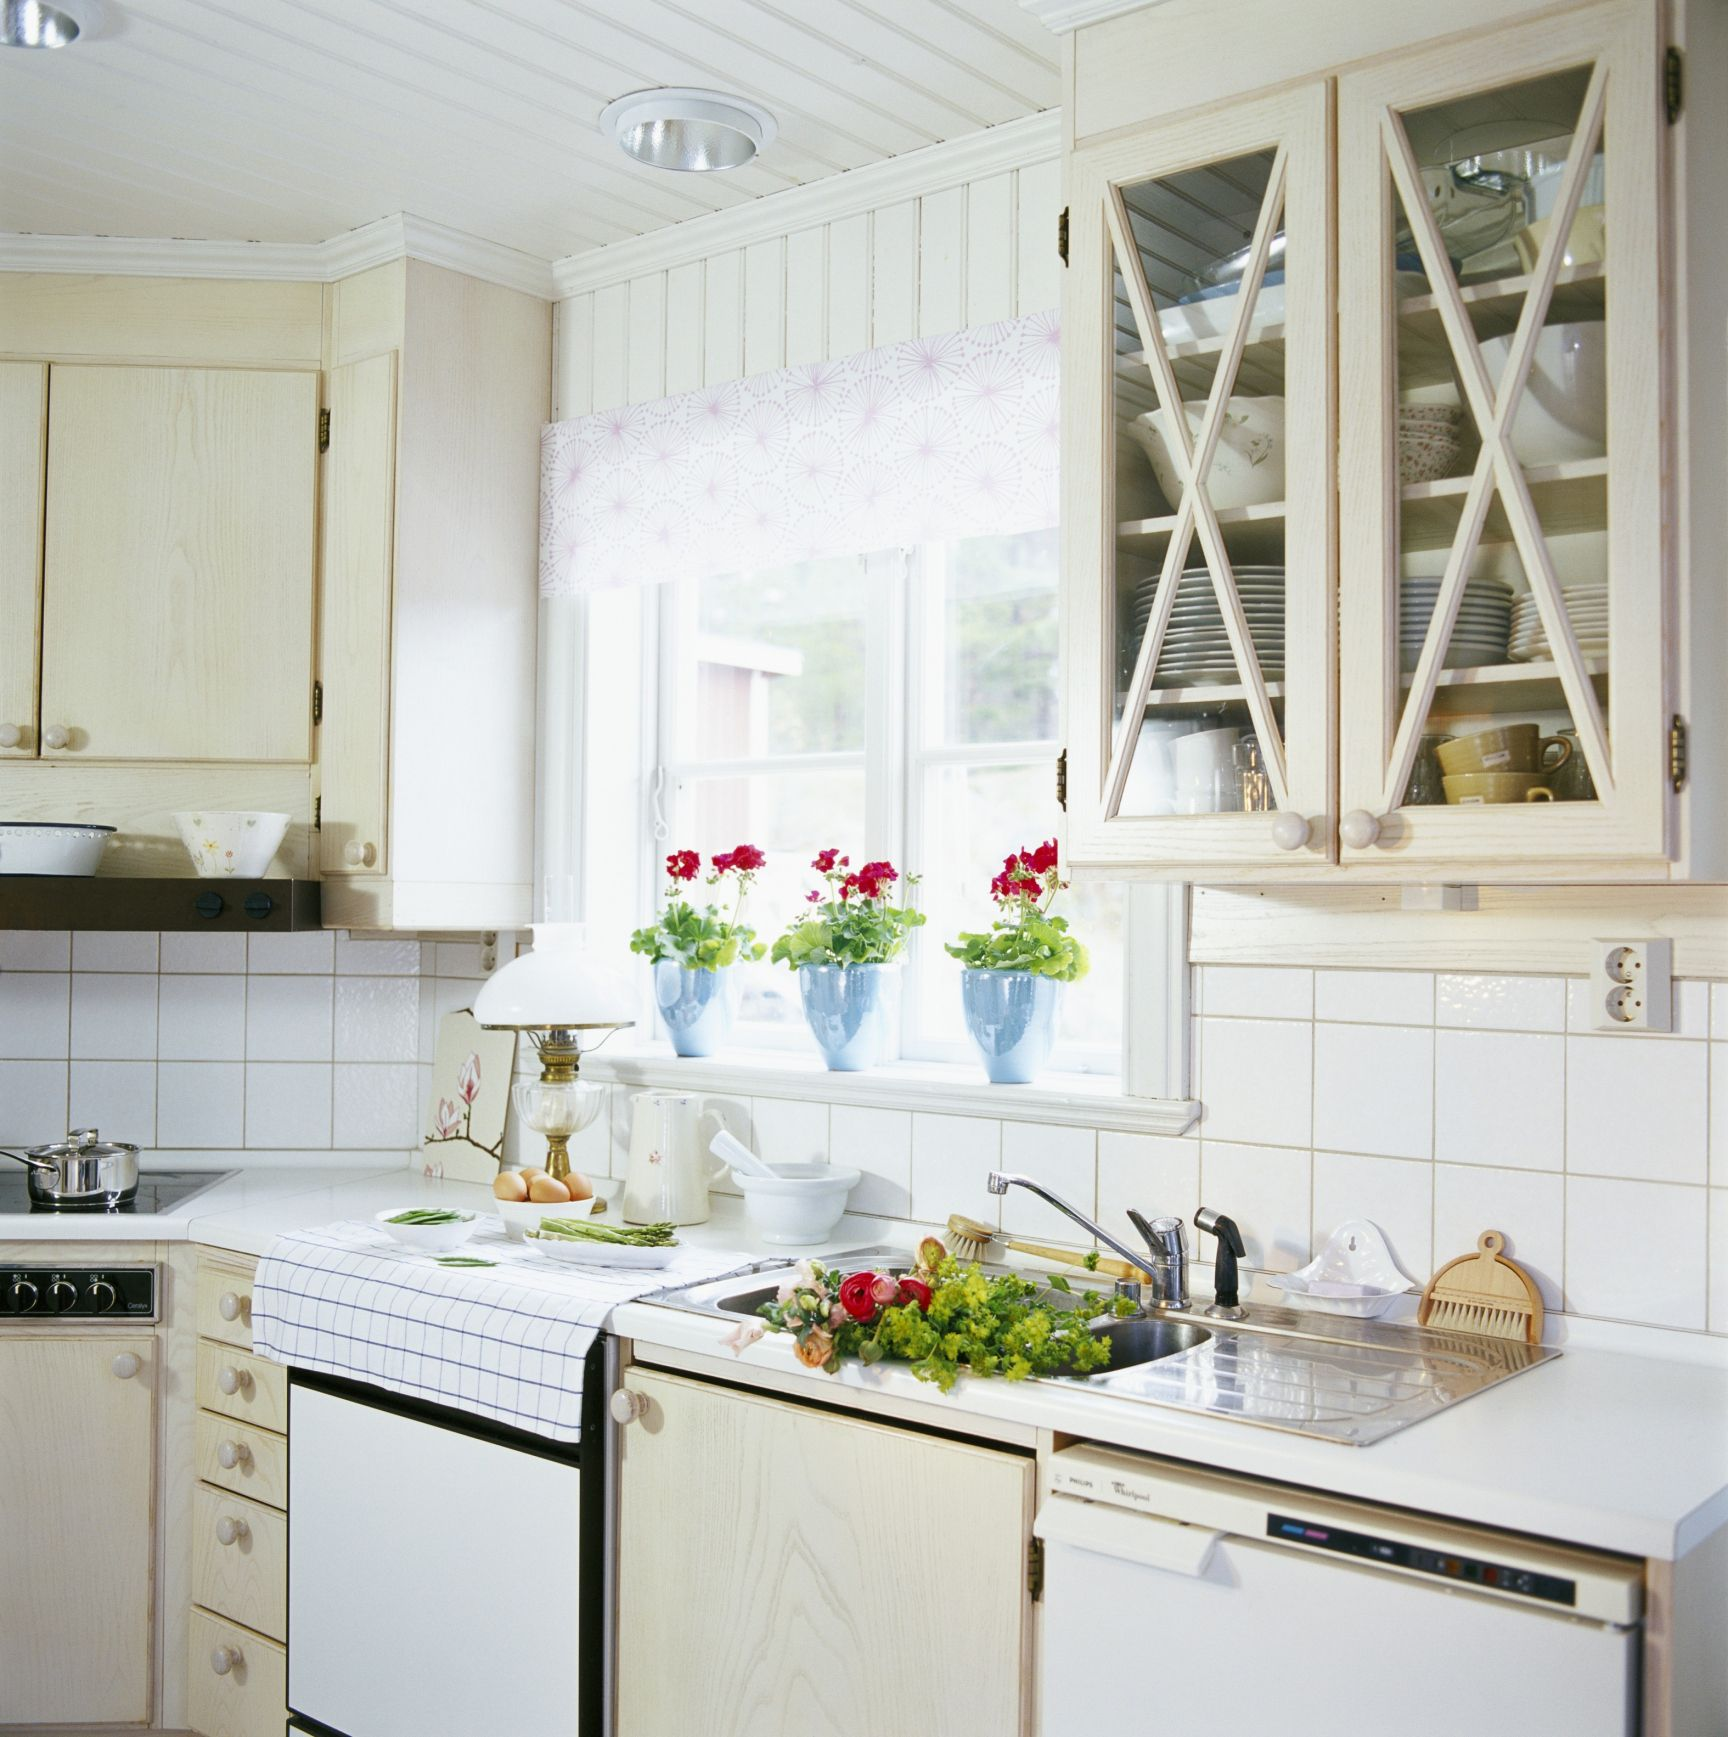 Thermofoil Cabinets Basics and Buying Guide